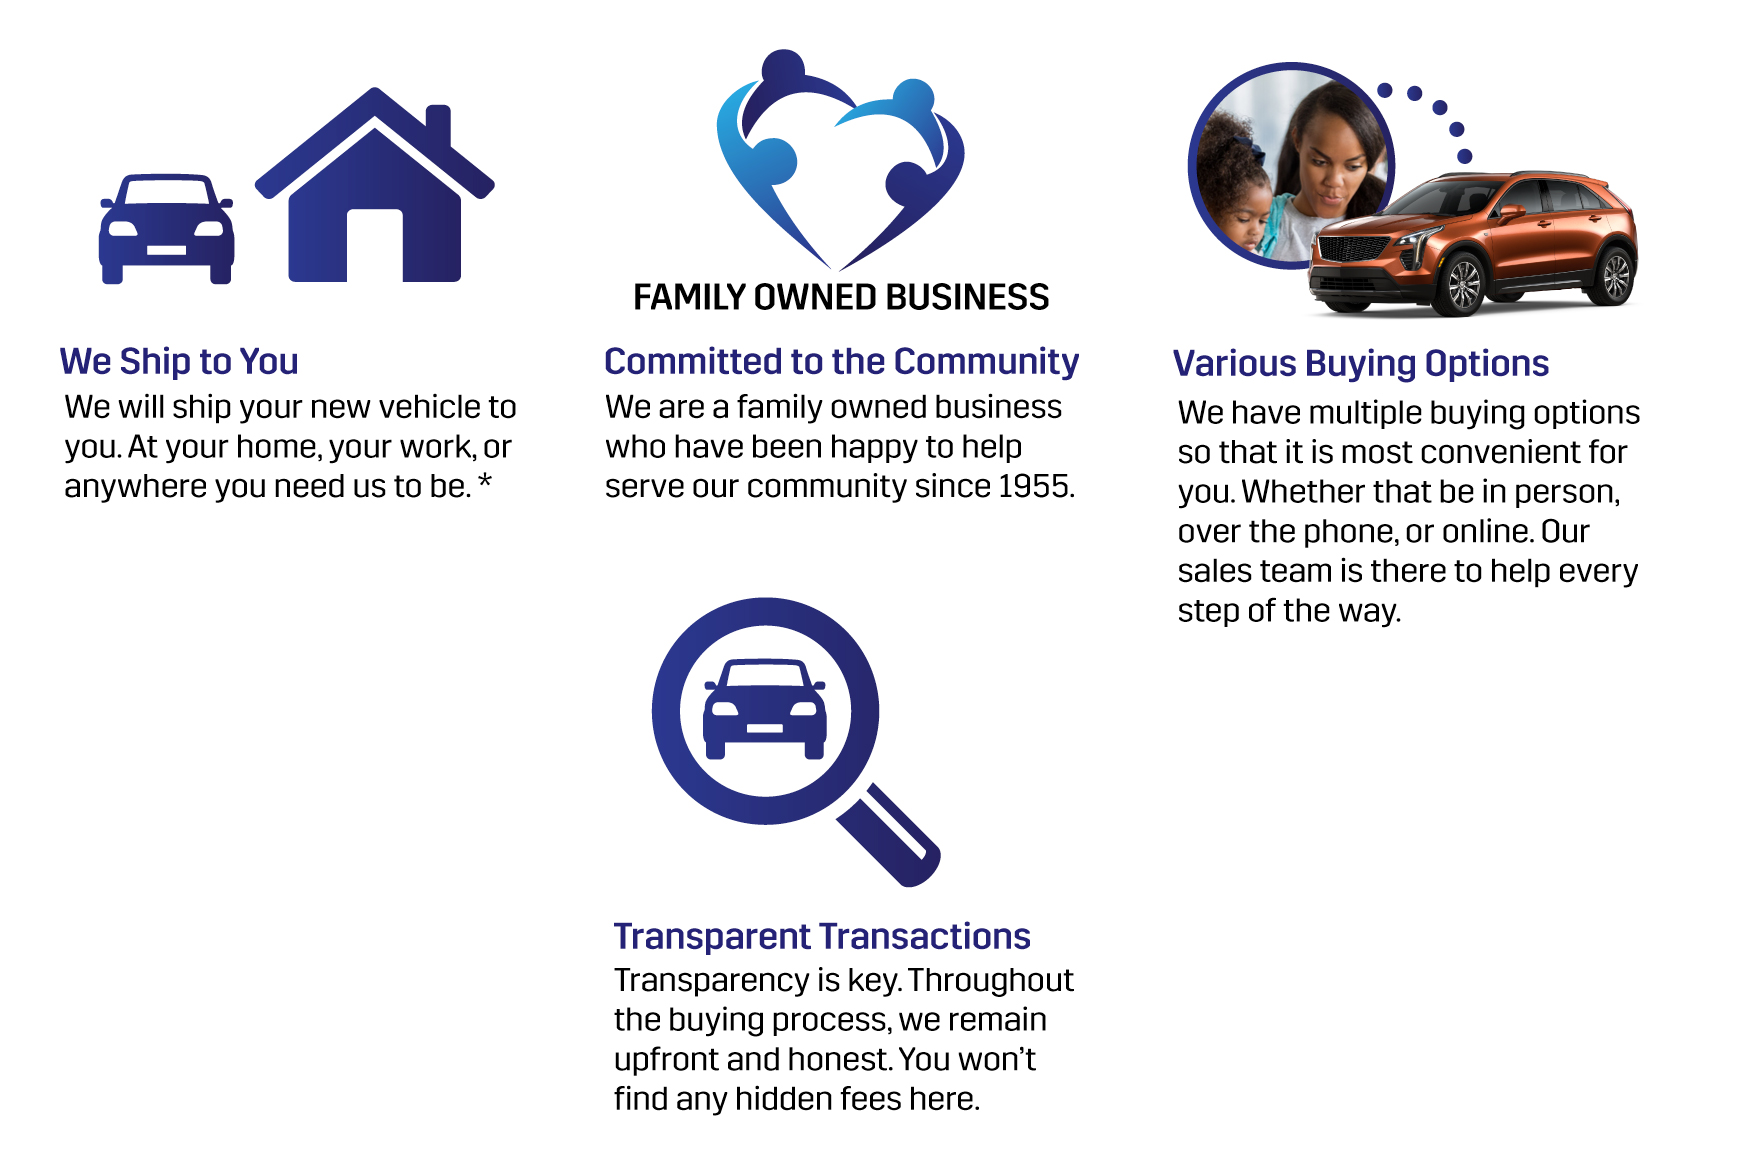 We Ship to You, Committed to the Community, Various Buying Options, Transparent Transactions